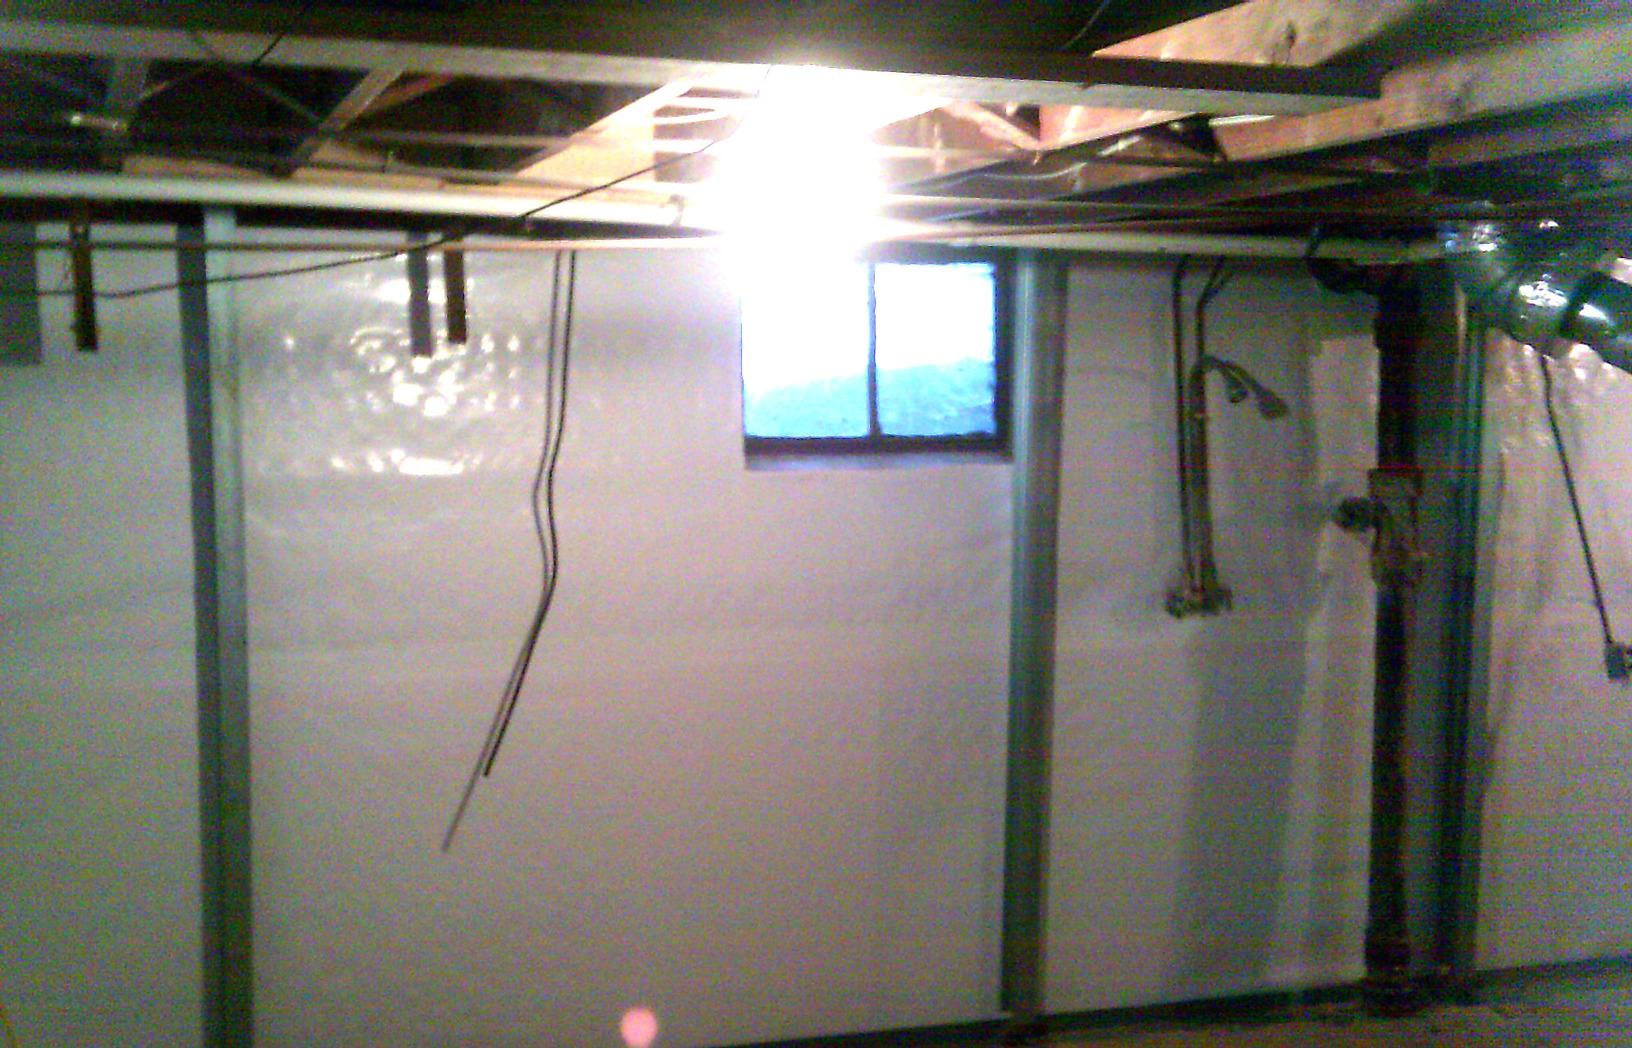 CleanSpace liner is installed to drain wall leaks and act as a vapor barrier to help keep the basement dry.